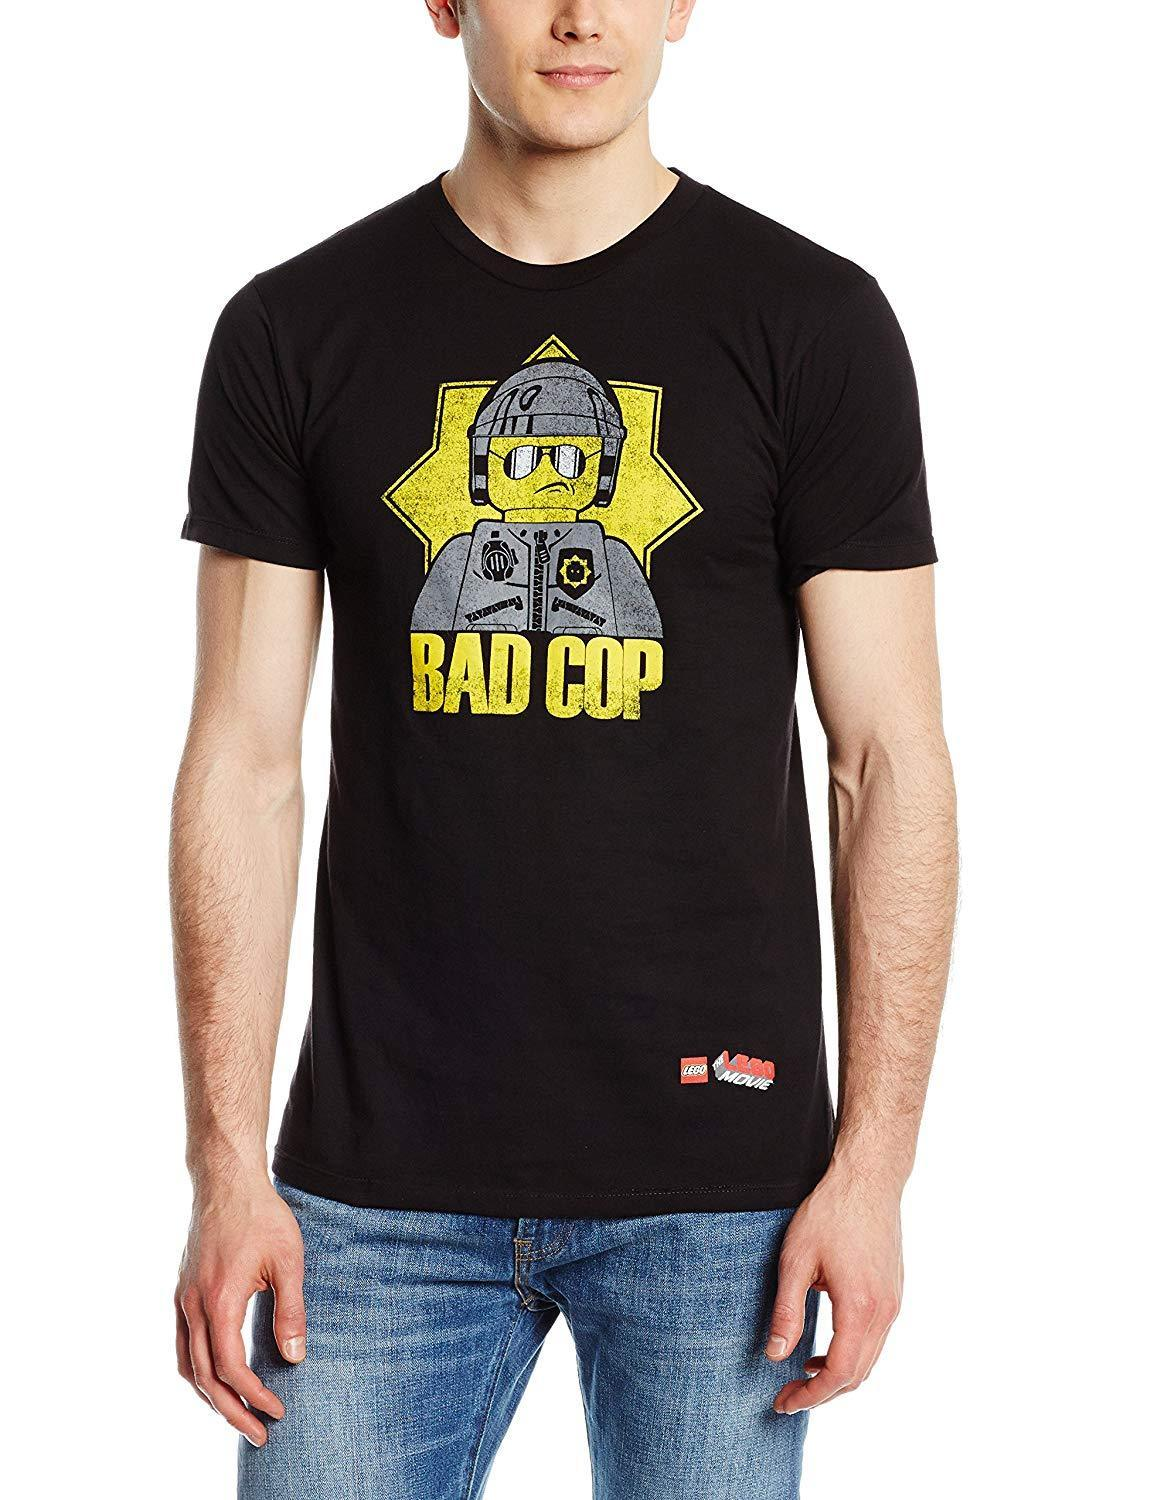 Adult Black Comedy Movie Lego Bad Cop Police Officer Interrogator T-Shirt Tee image